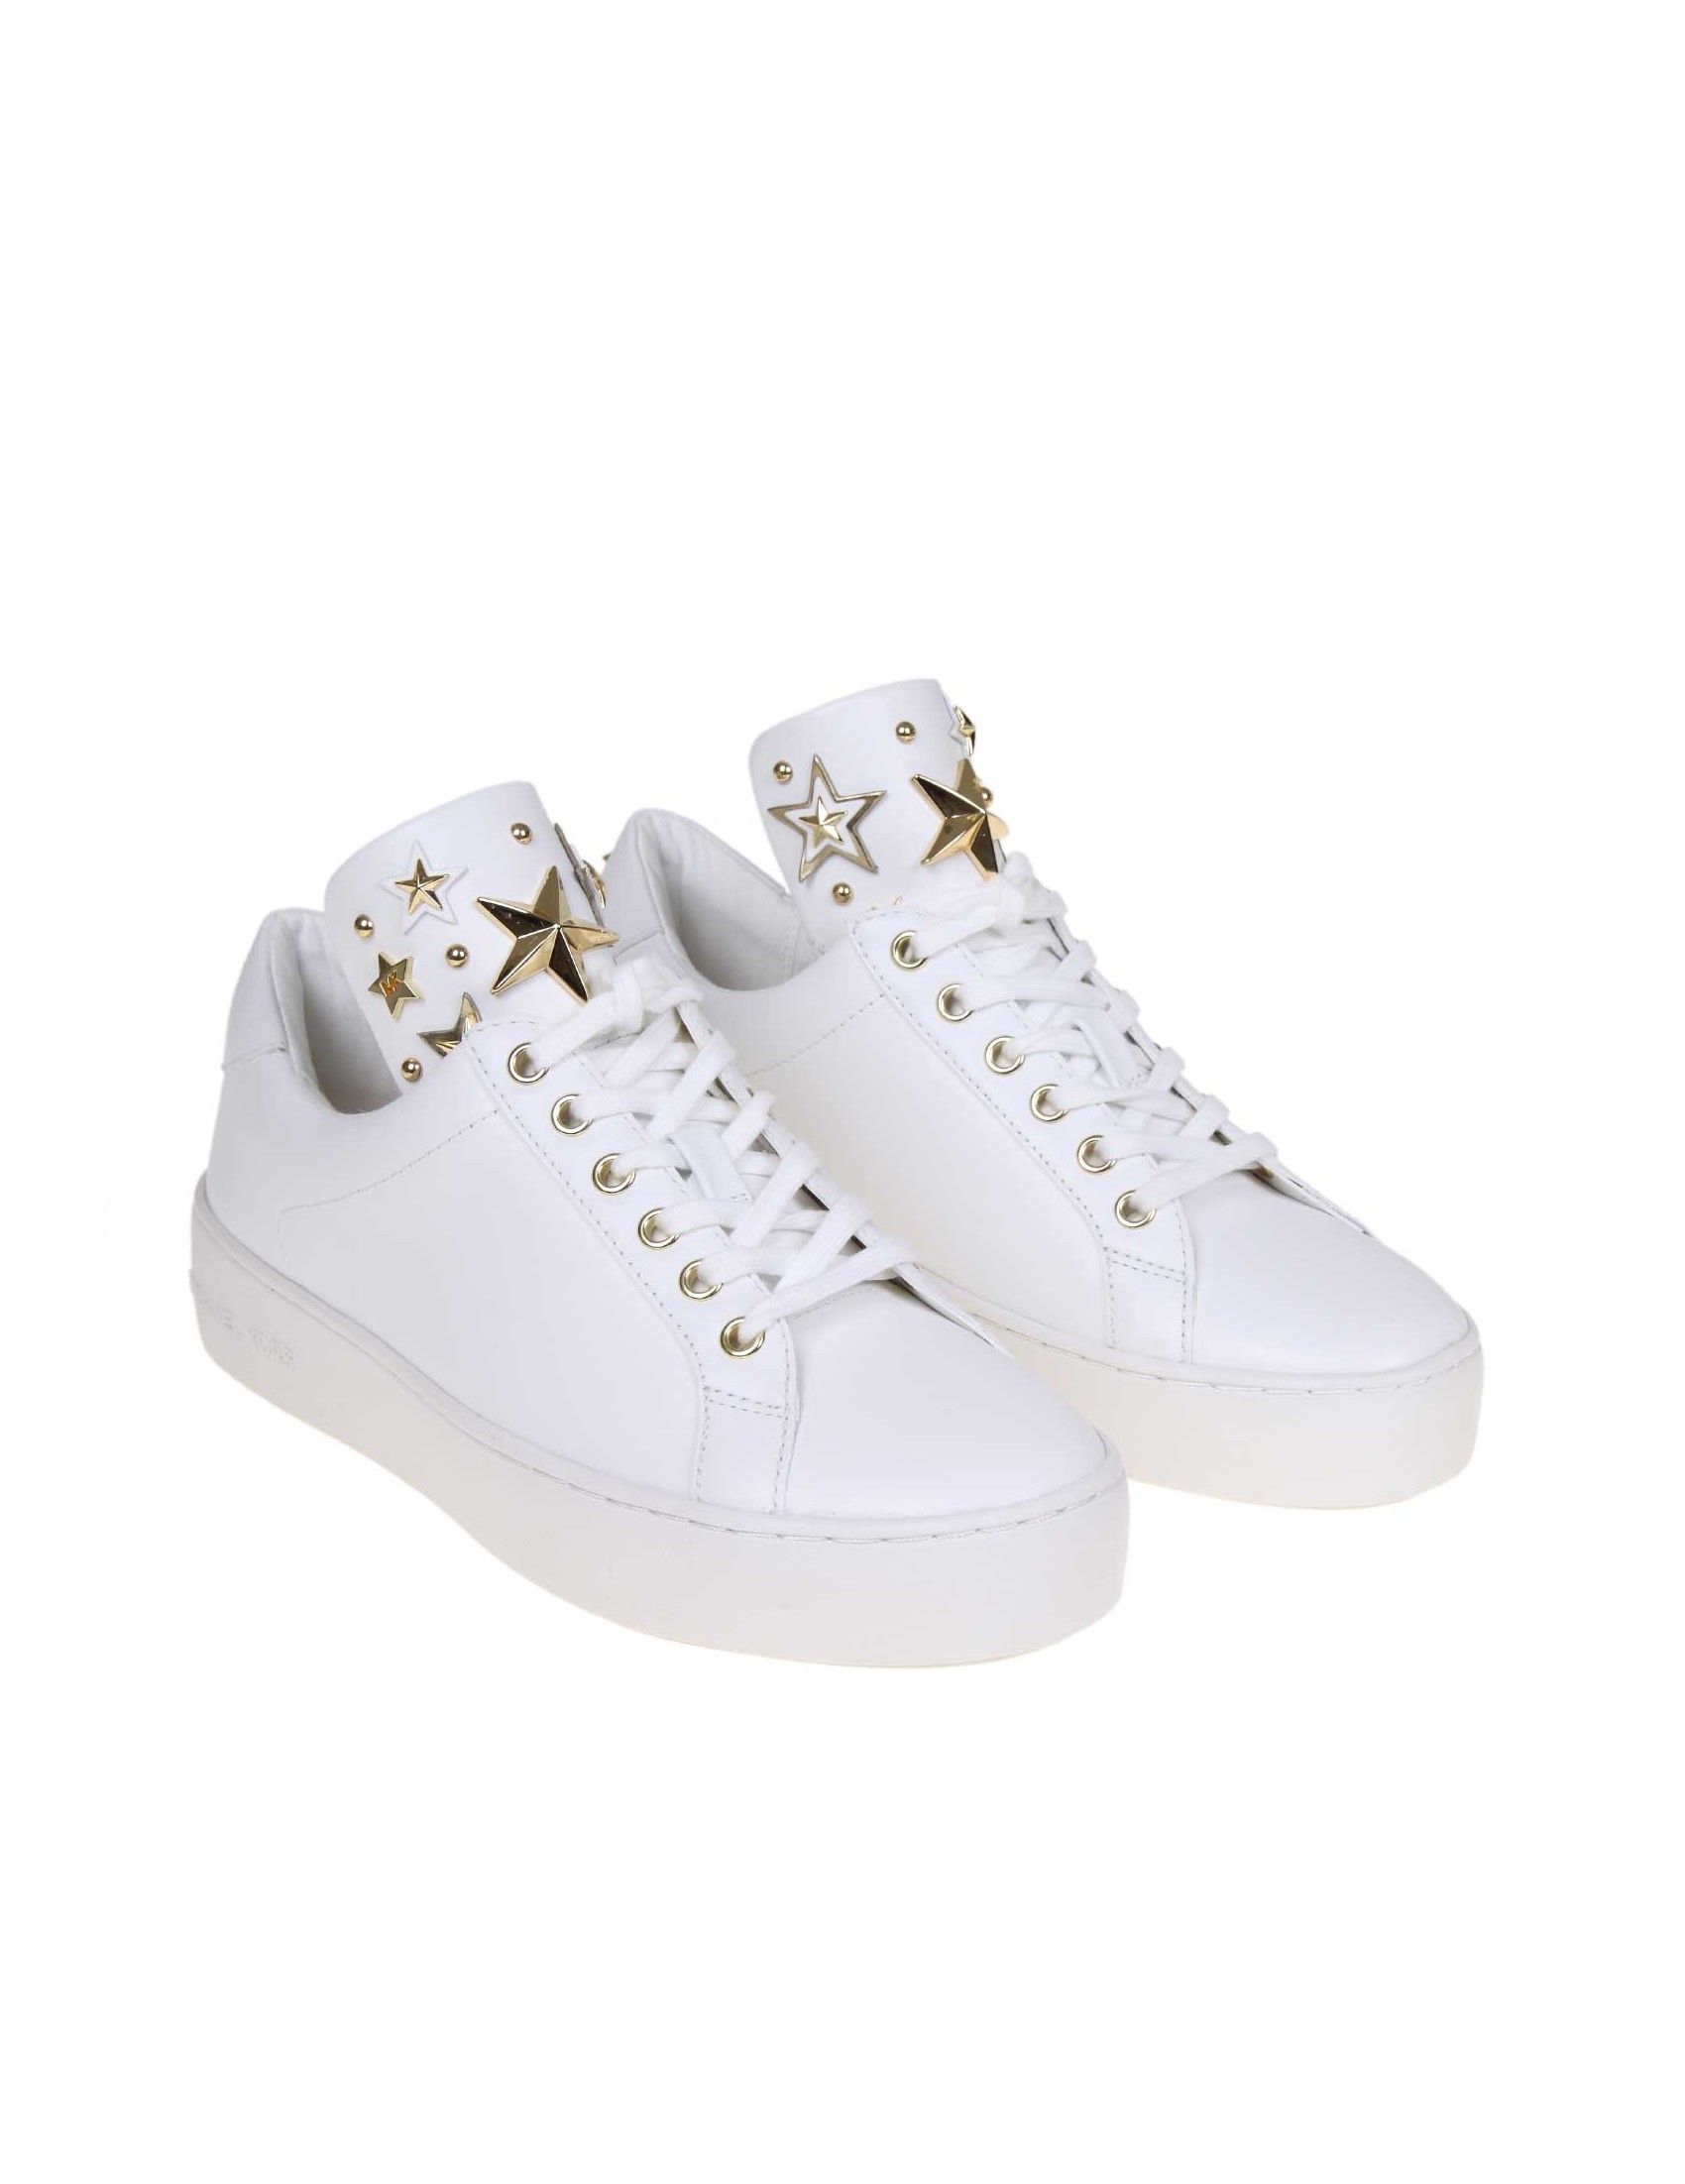 buy online 51a44 1ecec MICHAEL KORS MINDY SNEAKERS IN WHITE LEATHER